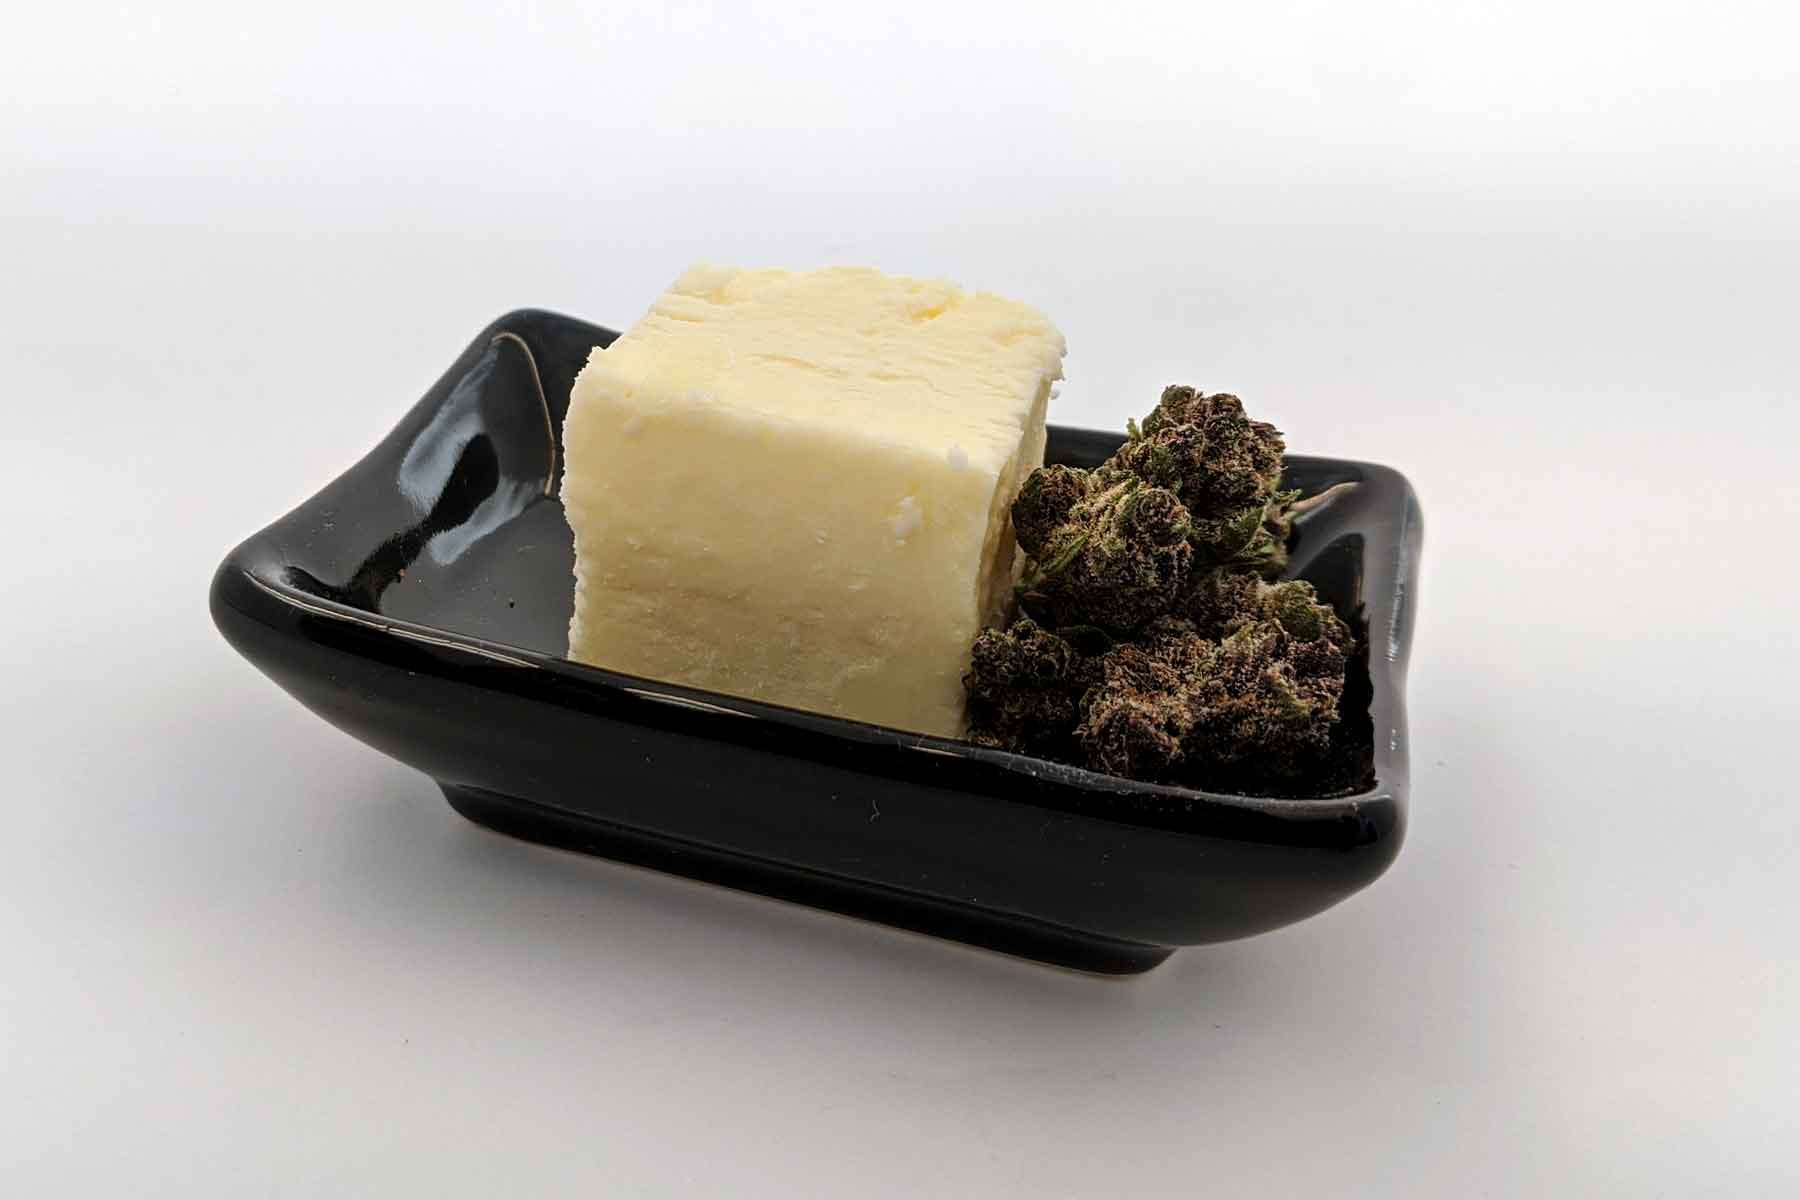 Cannabis infused butter.